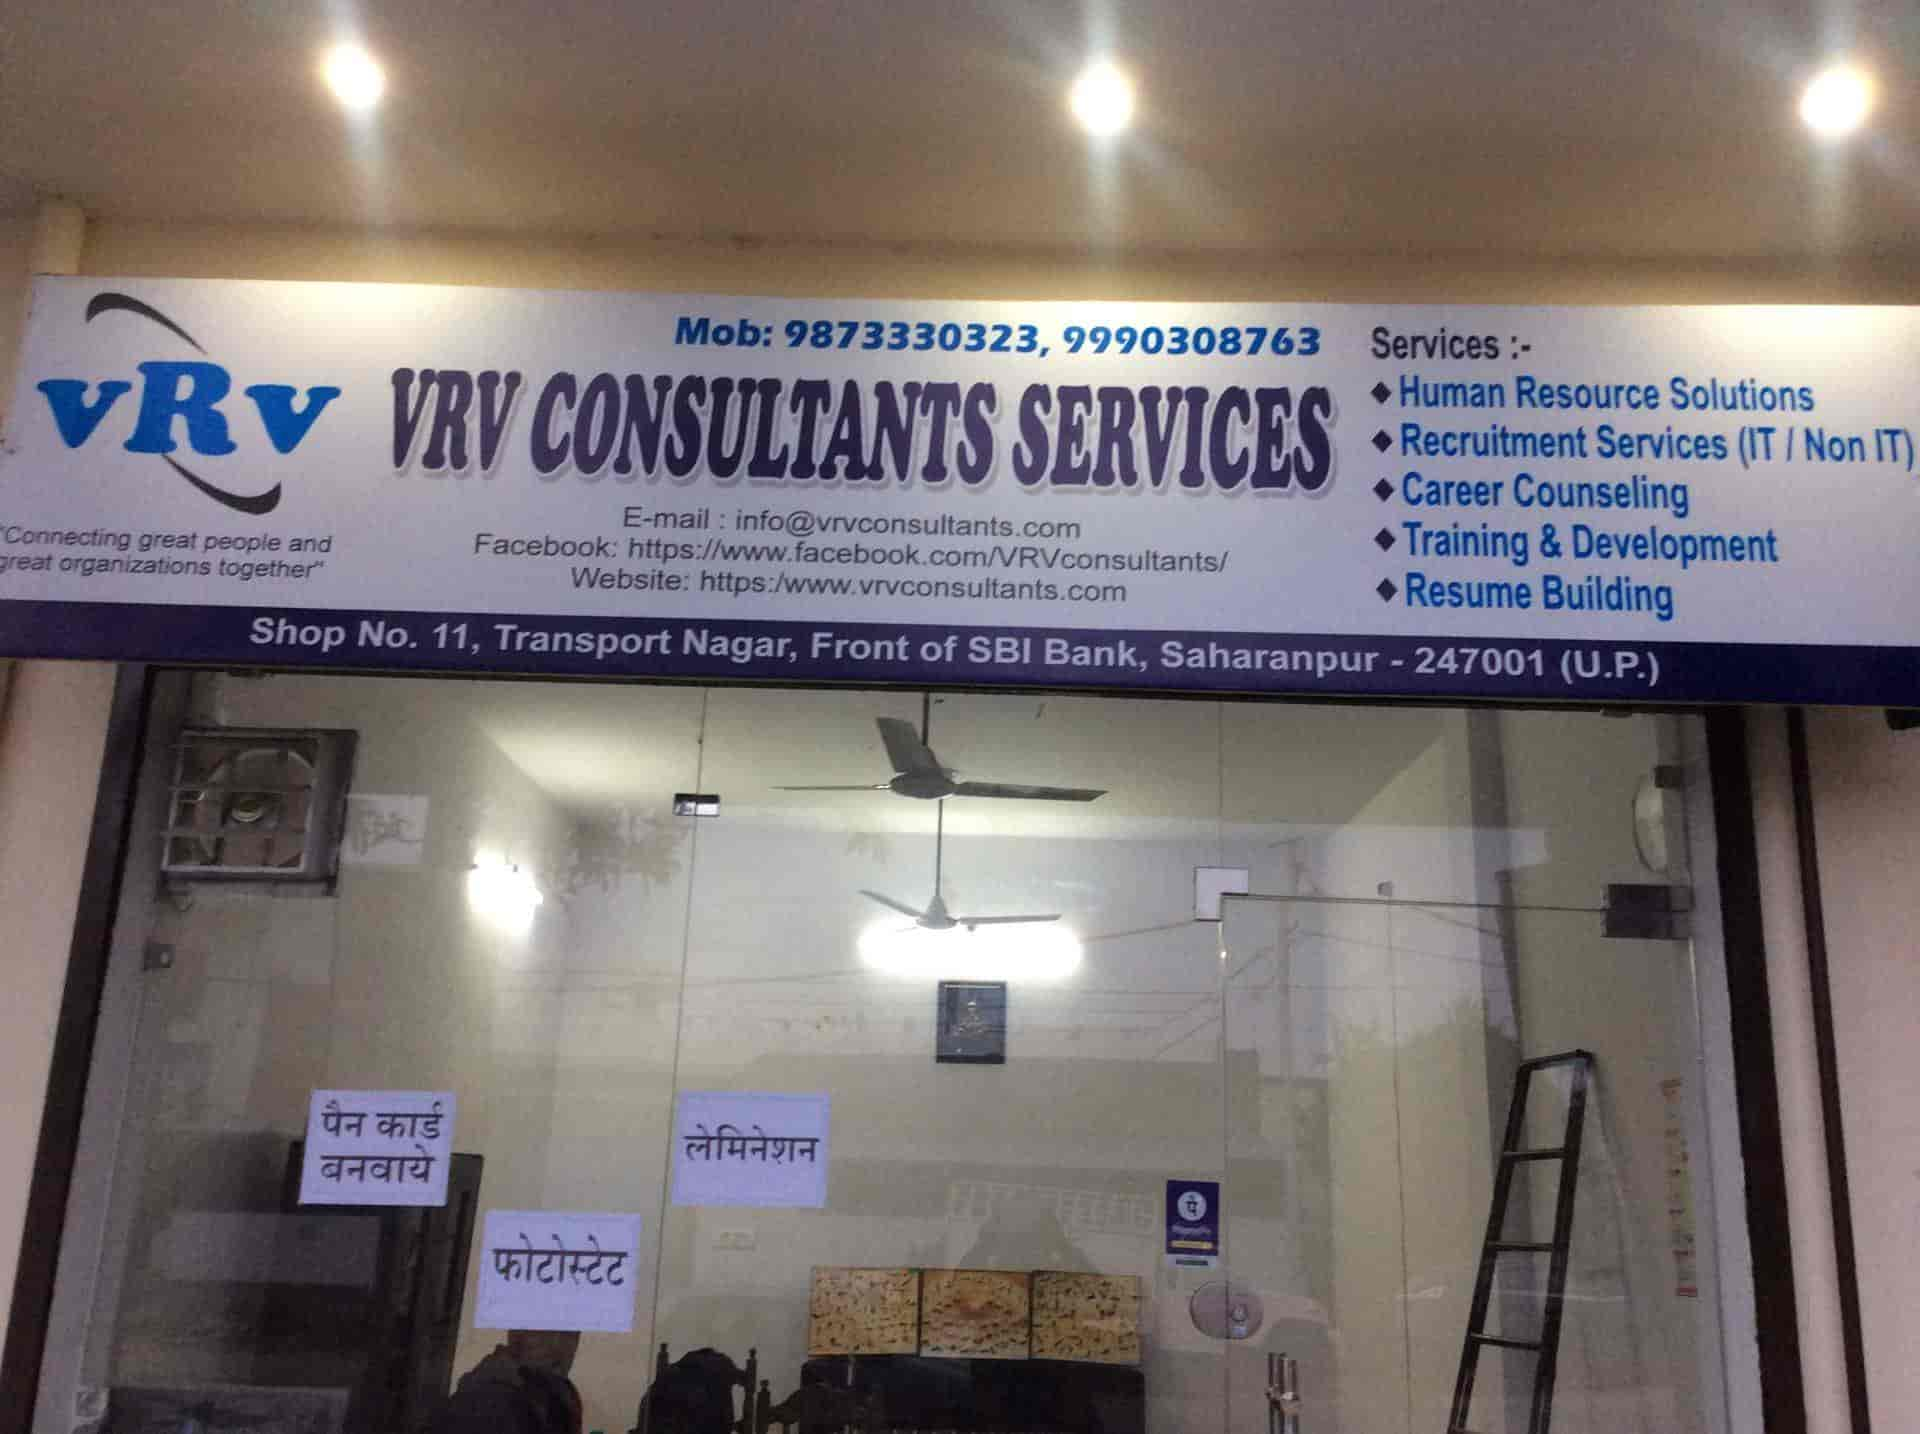 VRV Consultants Services, Nearby Sbi Bank - Placement Services